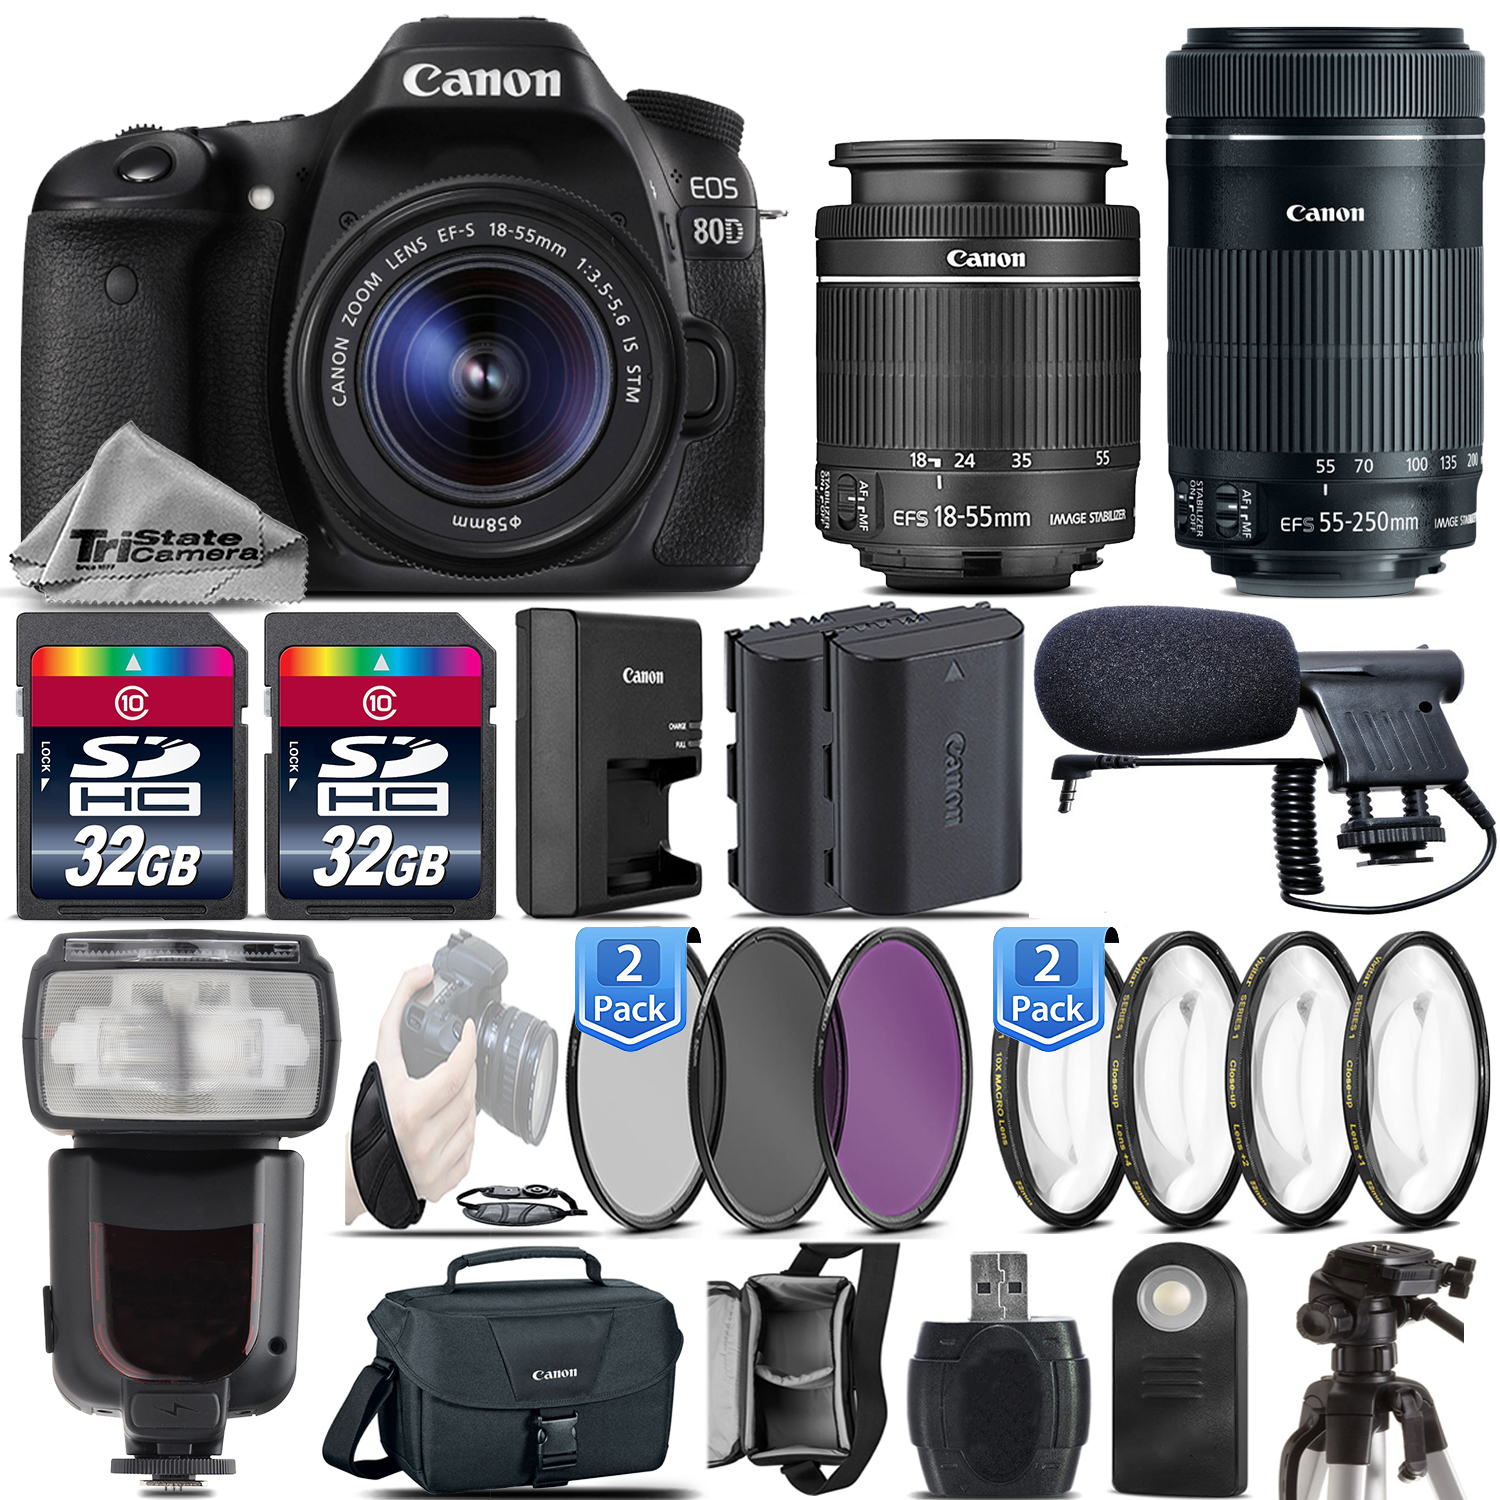 Canon 80D DSLR WiFi NFC 1080p DIGIC 6 Camera + 18-55mm IS STM + 55-250mm IS STM *FREE SHIPPING*